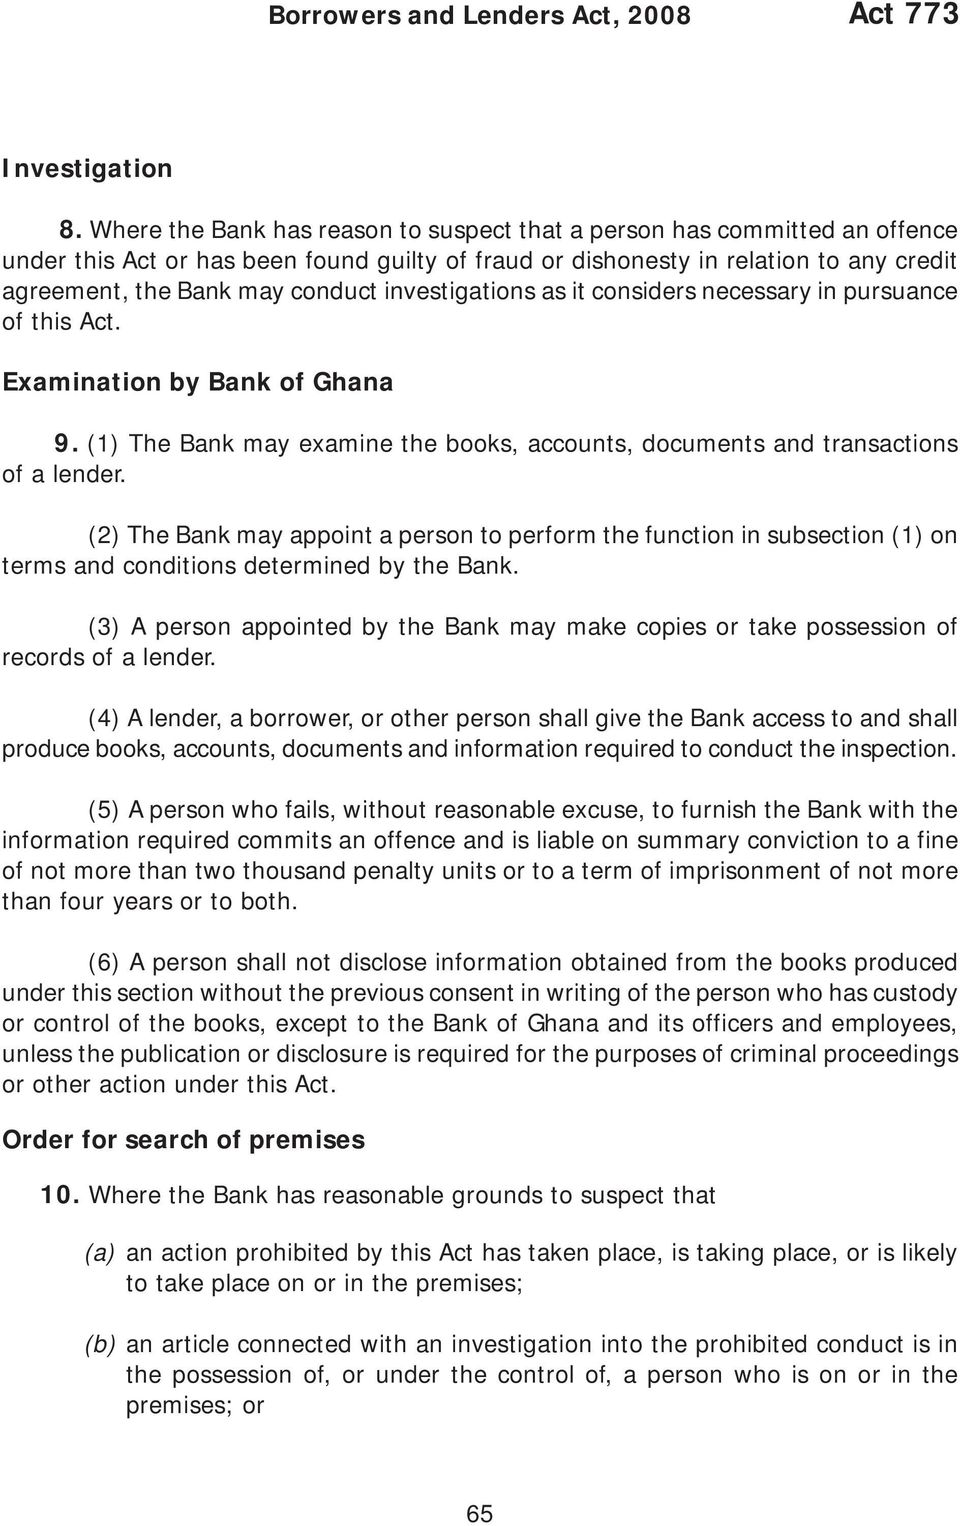 investigations as it considers necessary in pursuance of this Act. Examination by Bank of Ghana 9. (1) The Bank may examine the books, accounts, documents and transactions of a lender.